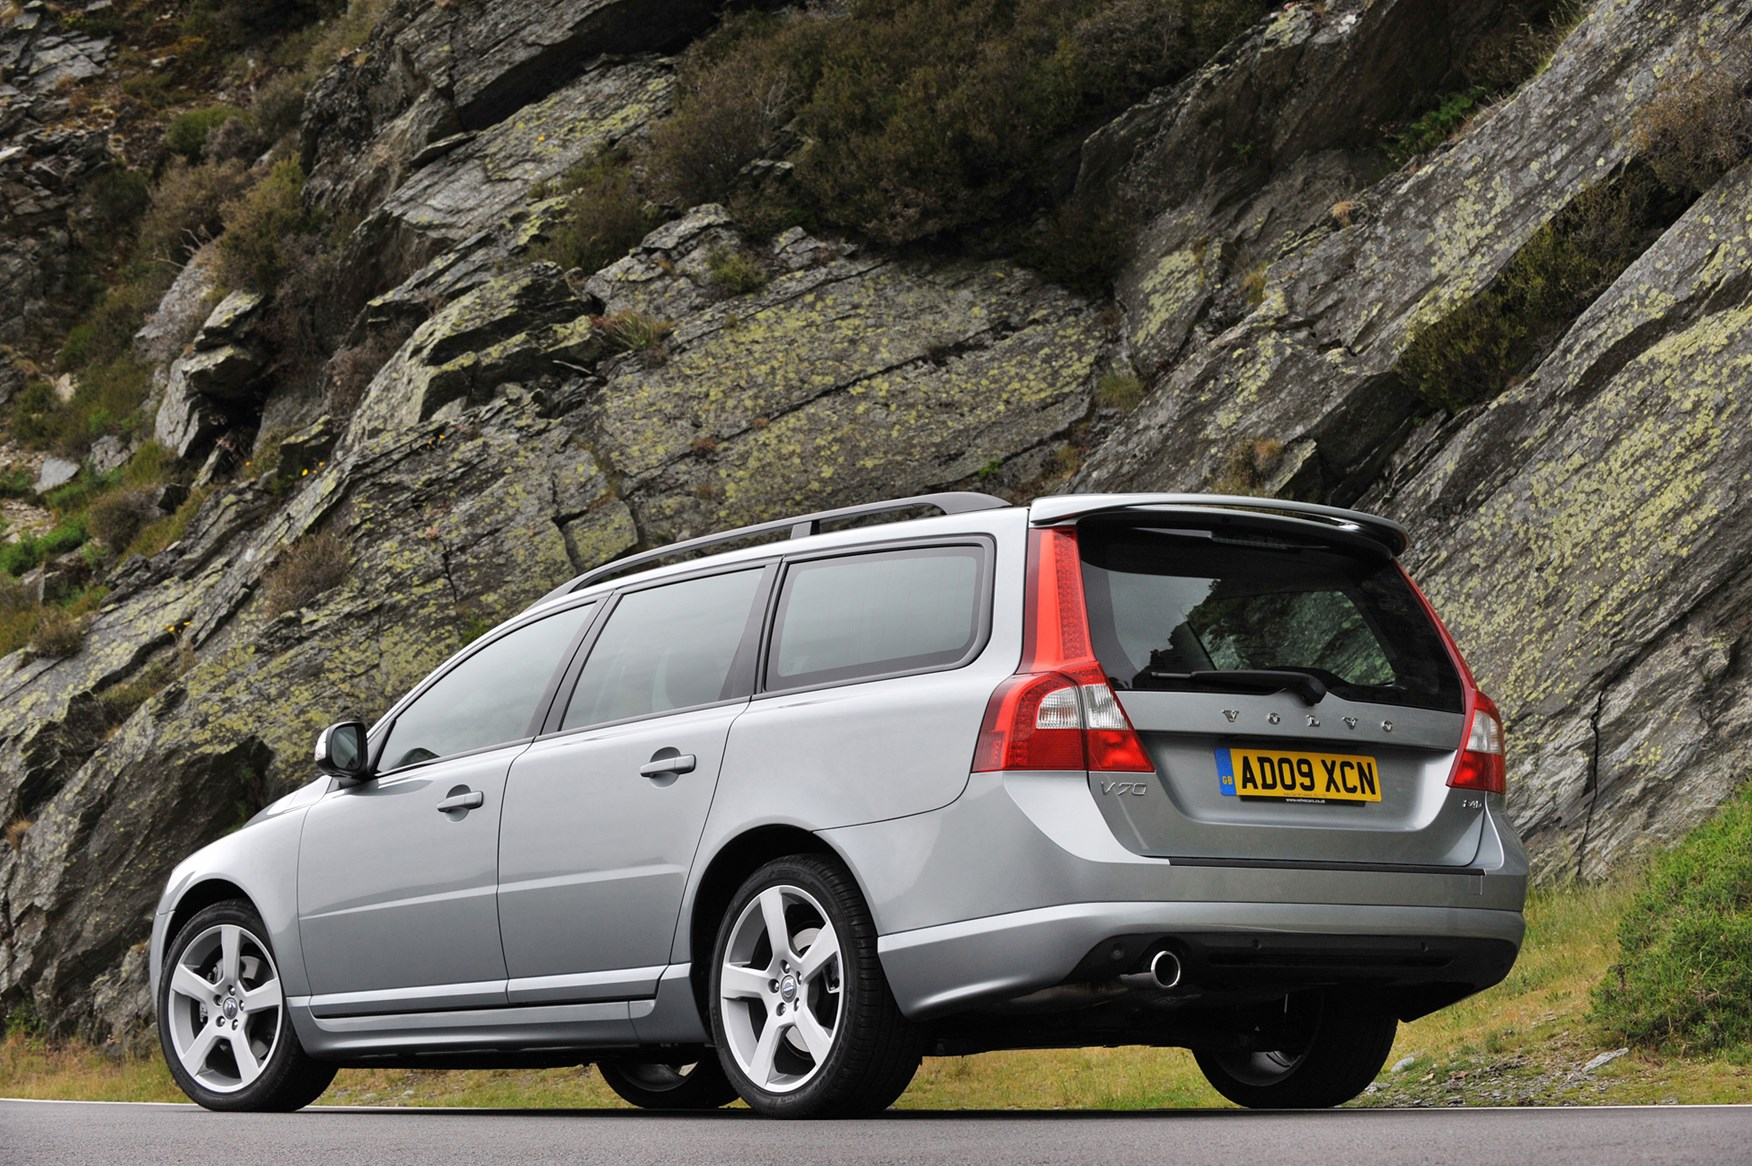 Volvo V70 Estate Review (2007 - 2016) | Parkers